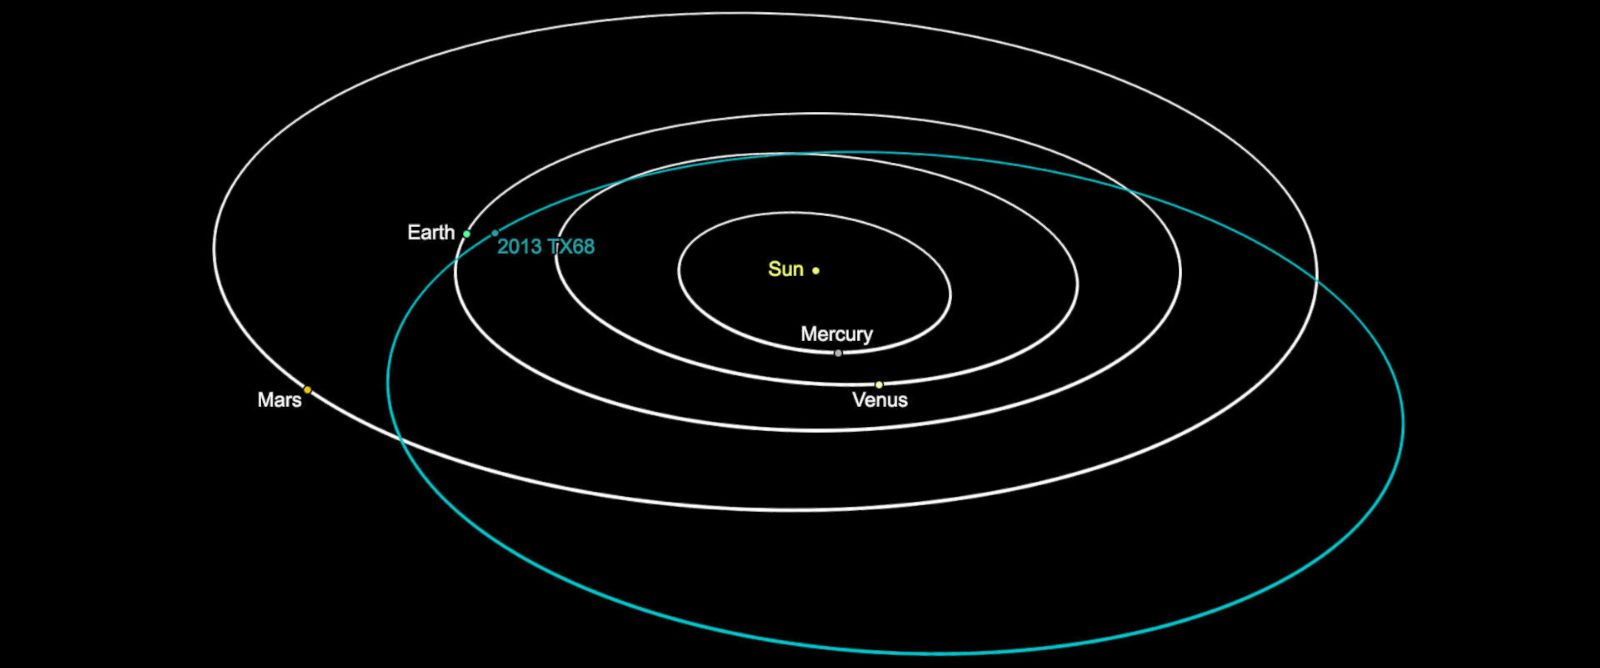 PHOTO: This graphic depicts the orbit of asteroid 2013 TX68, which will fly by Earth on March 8, 2016. The asteroid poses no threat to Earth during this flyby or in the foreseeable future.